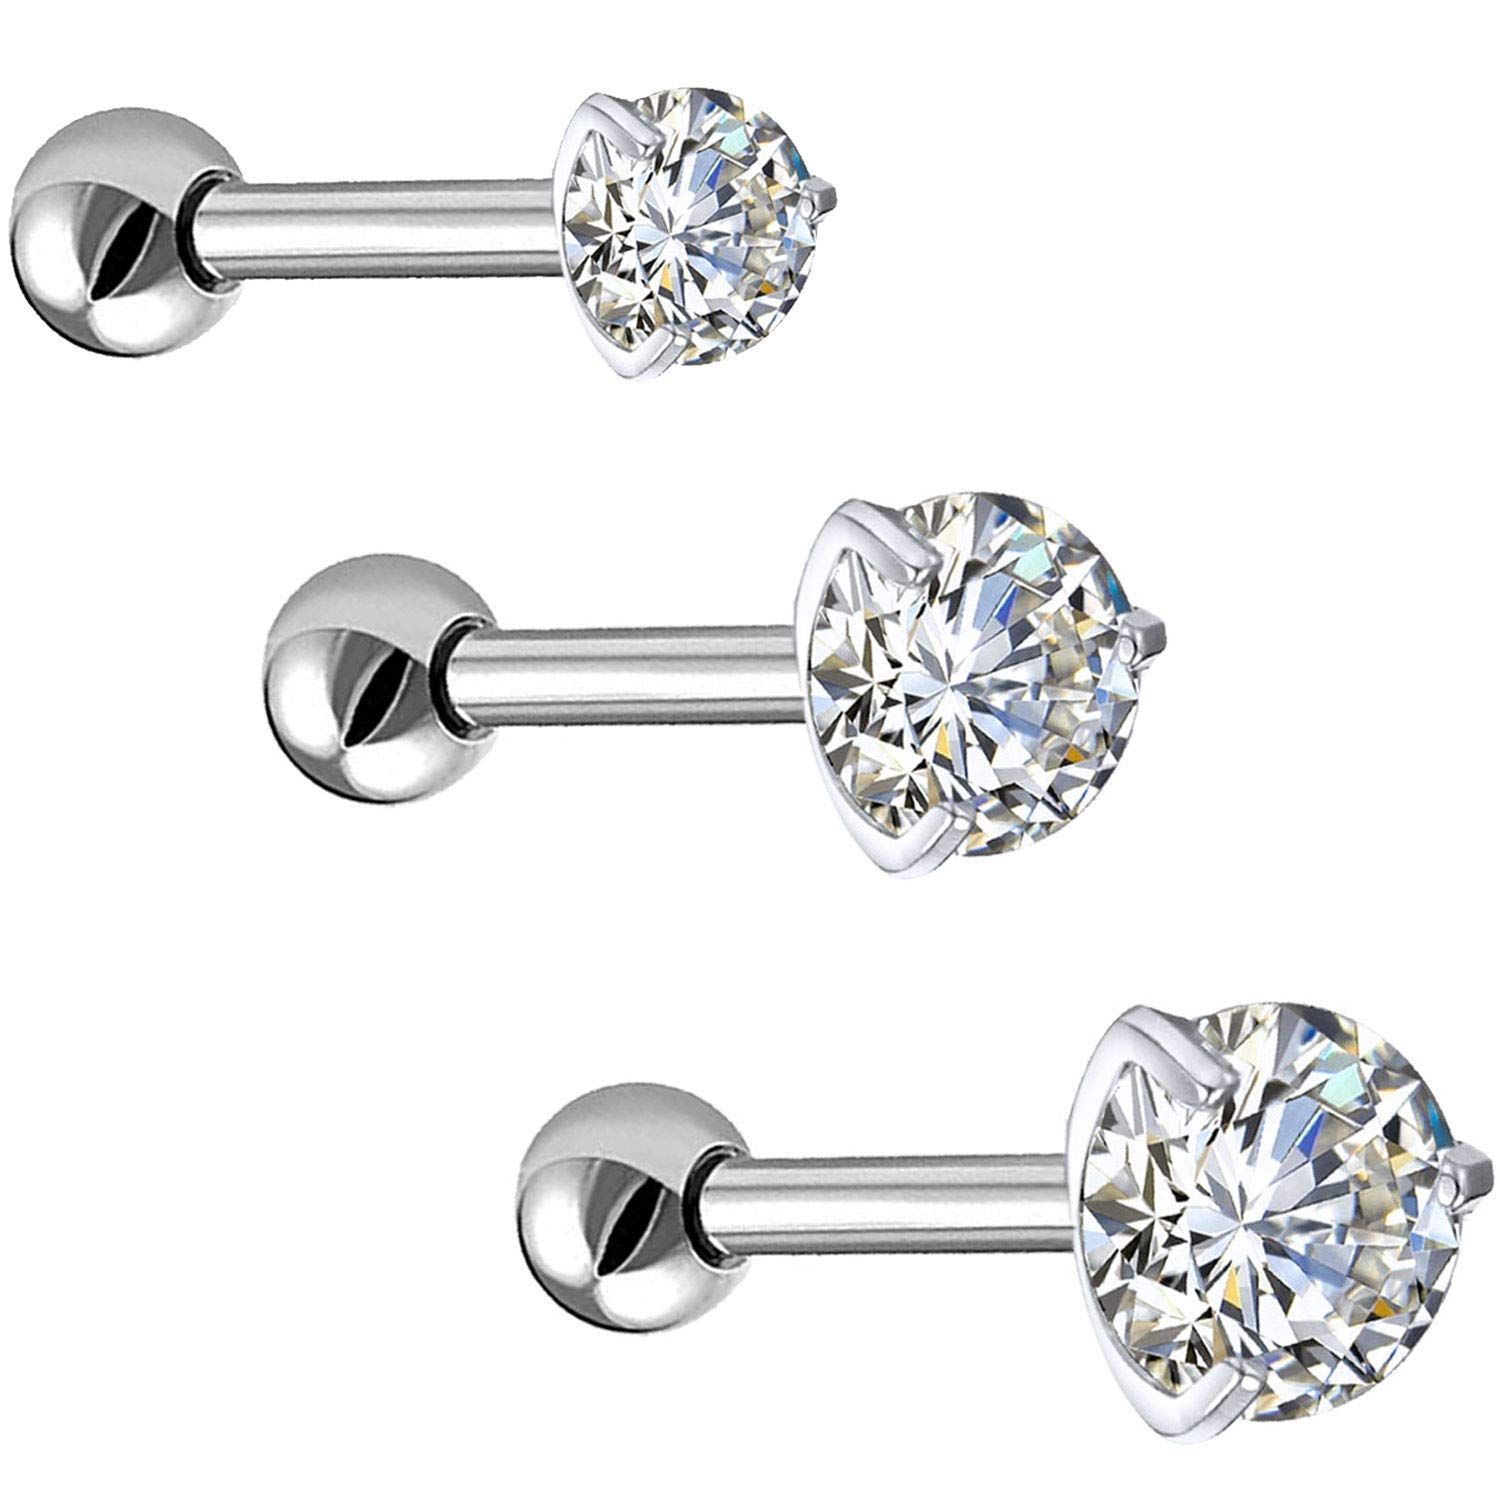 Bodyj4you 3pc Tragus Earrings Cartilage Studs 16g Daith Labret Lip Cz Steel Barbell Jewelry Set